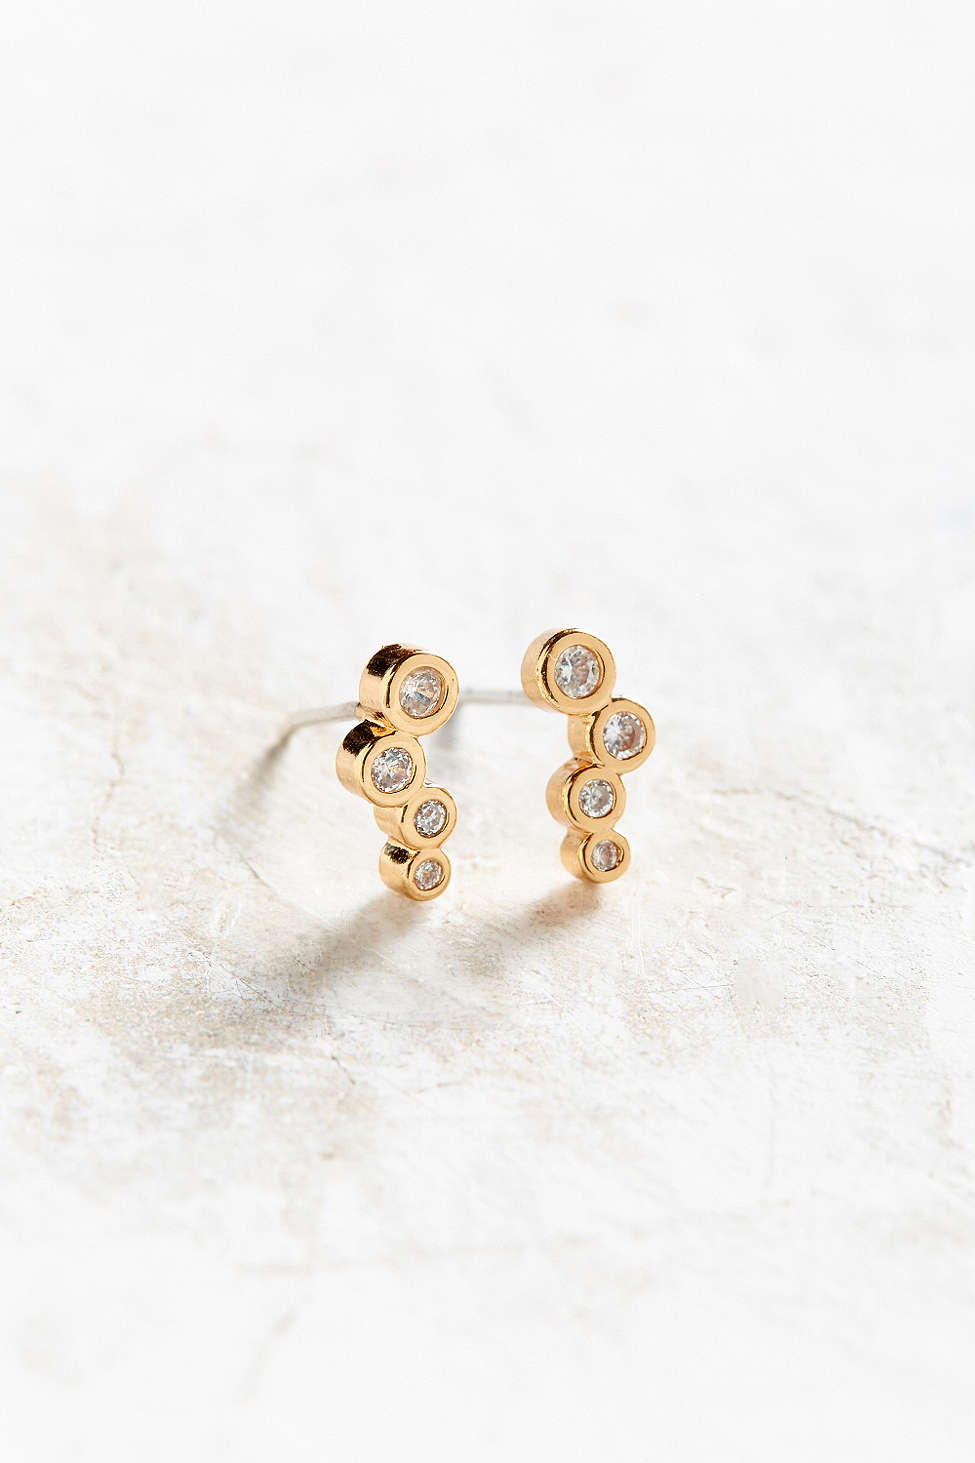 Clustered dot earring, 18K gold plated studs.